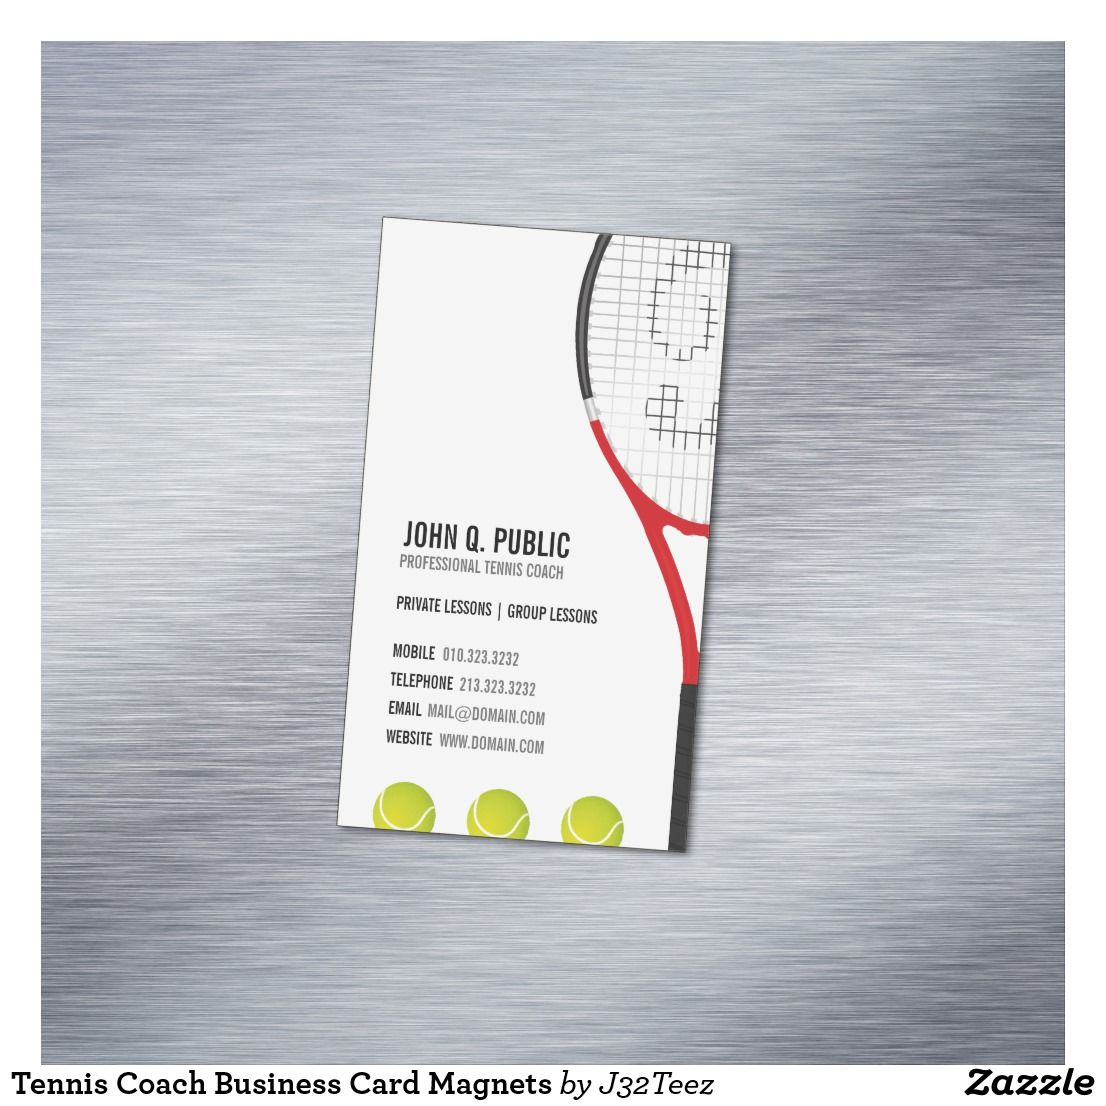 Tennis Coach Business Card Magnets | Business cards, Card templates ...